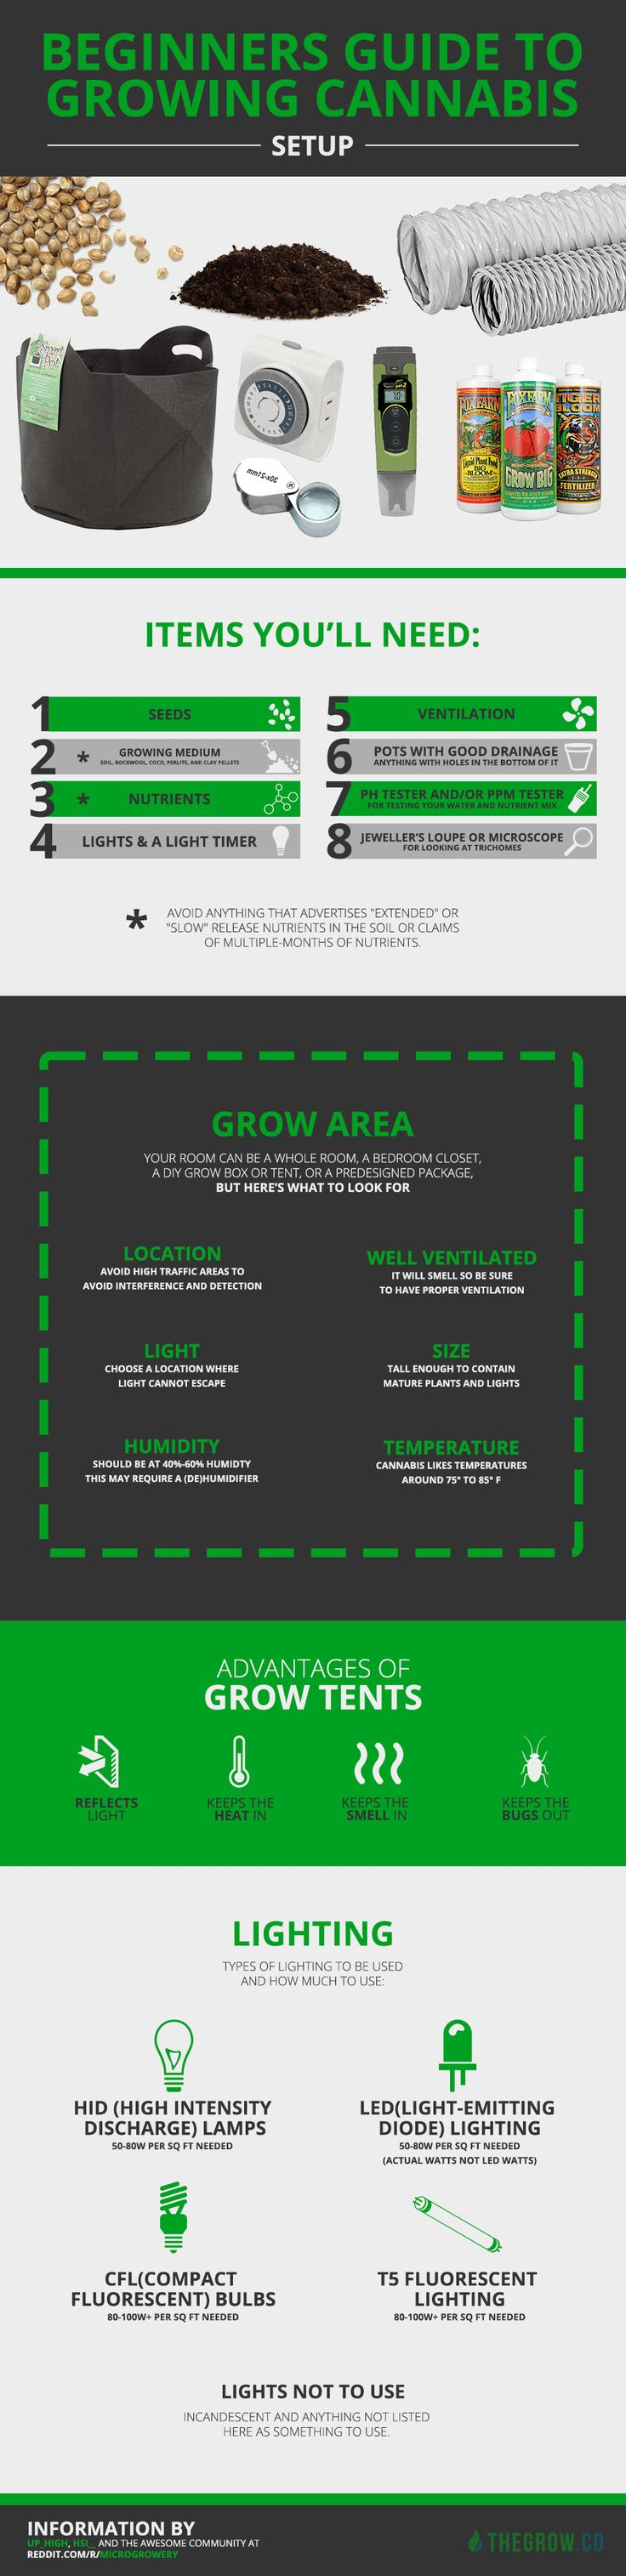 51 best growing cannabis images on pinterest marijuana plants a great head start makes for a great growing everything you need in one glimpse nvjuhfo Image collections